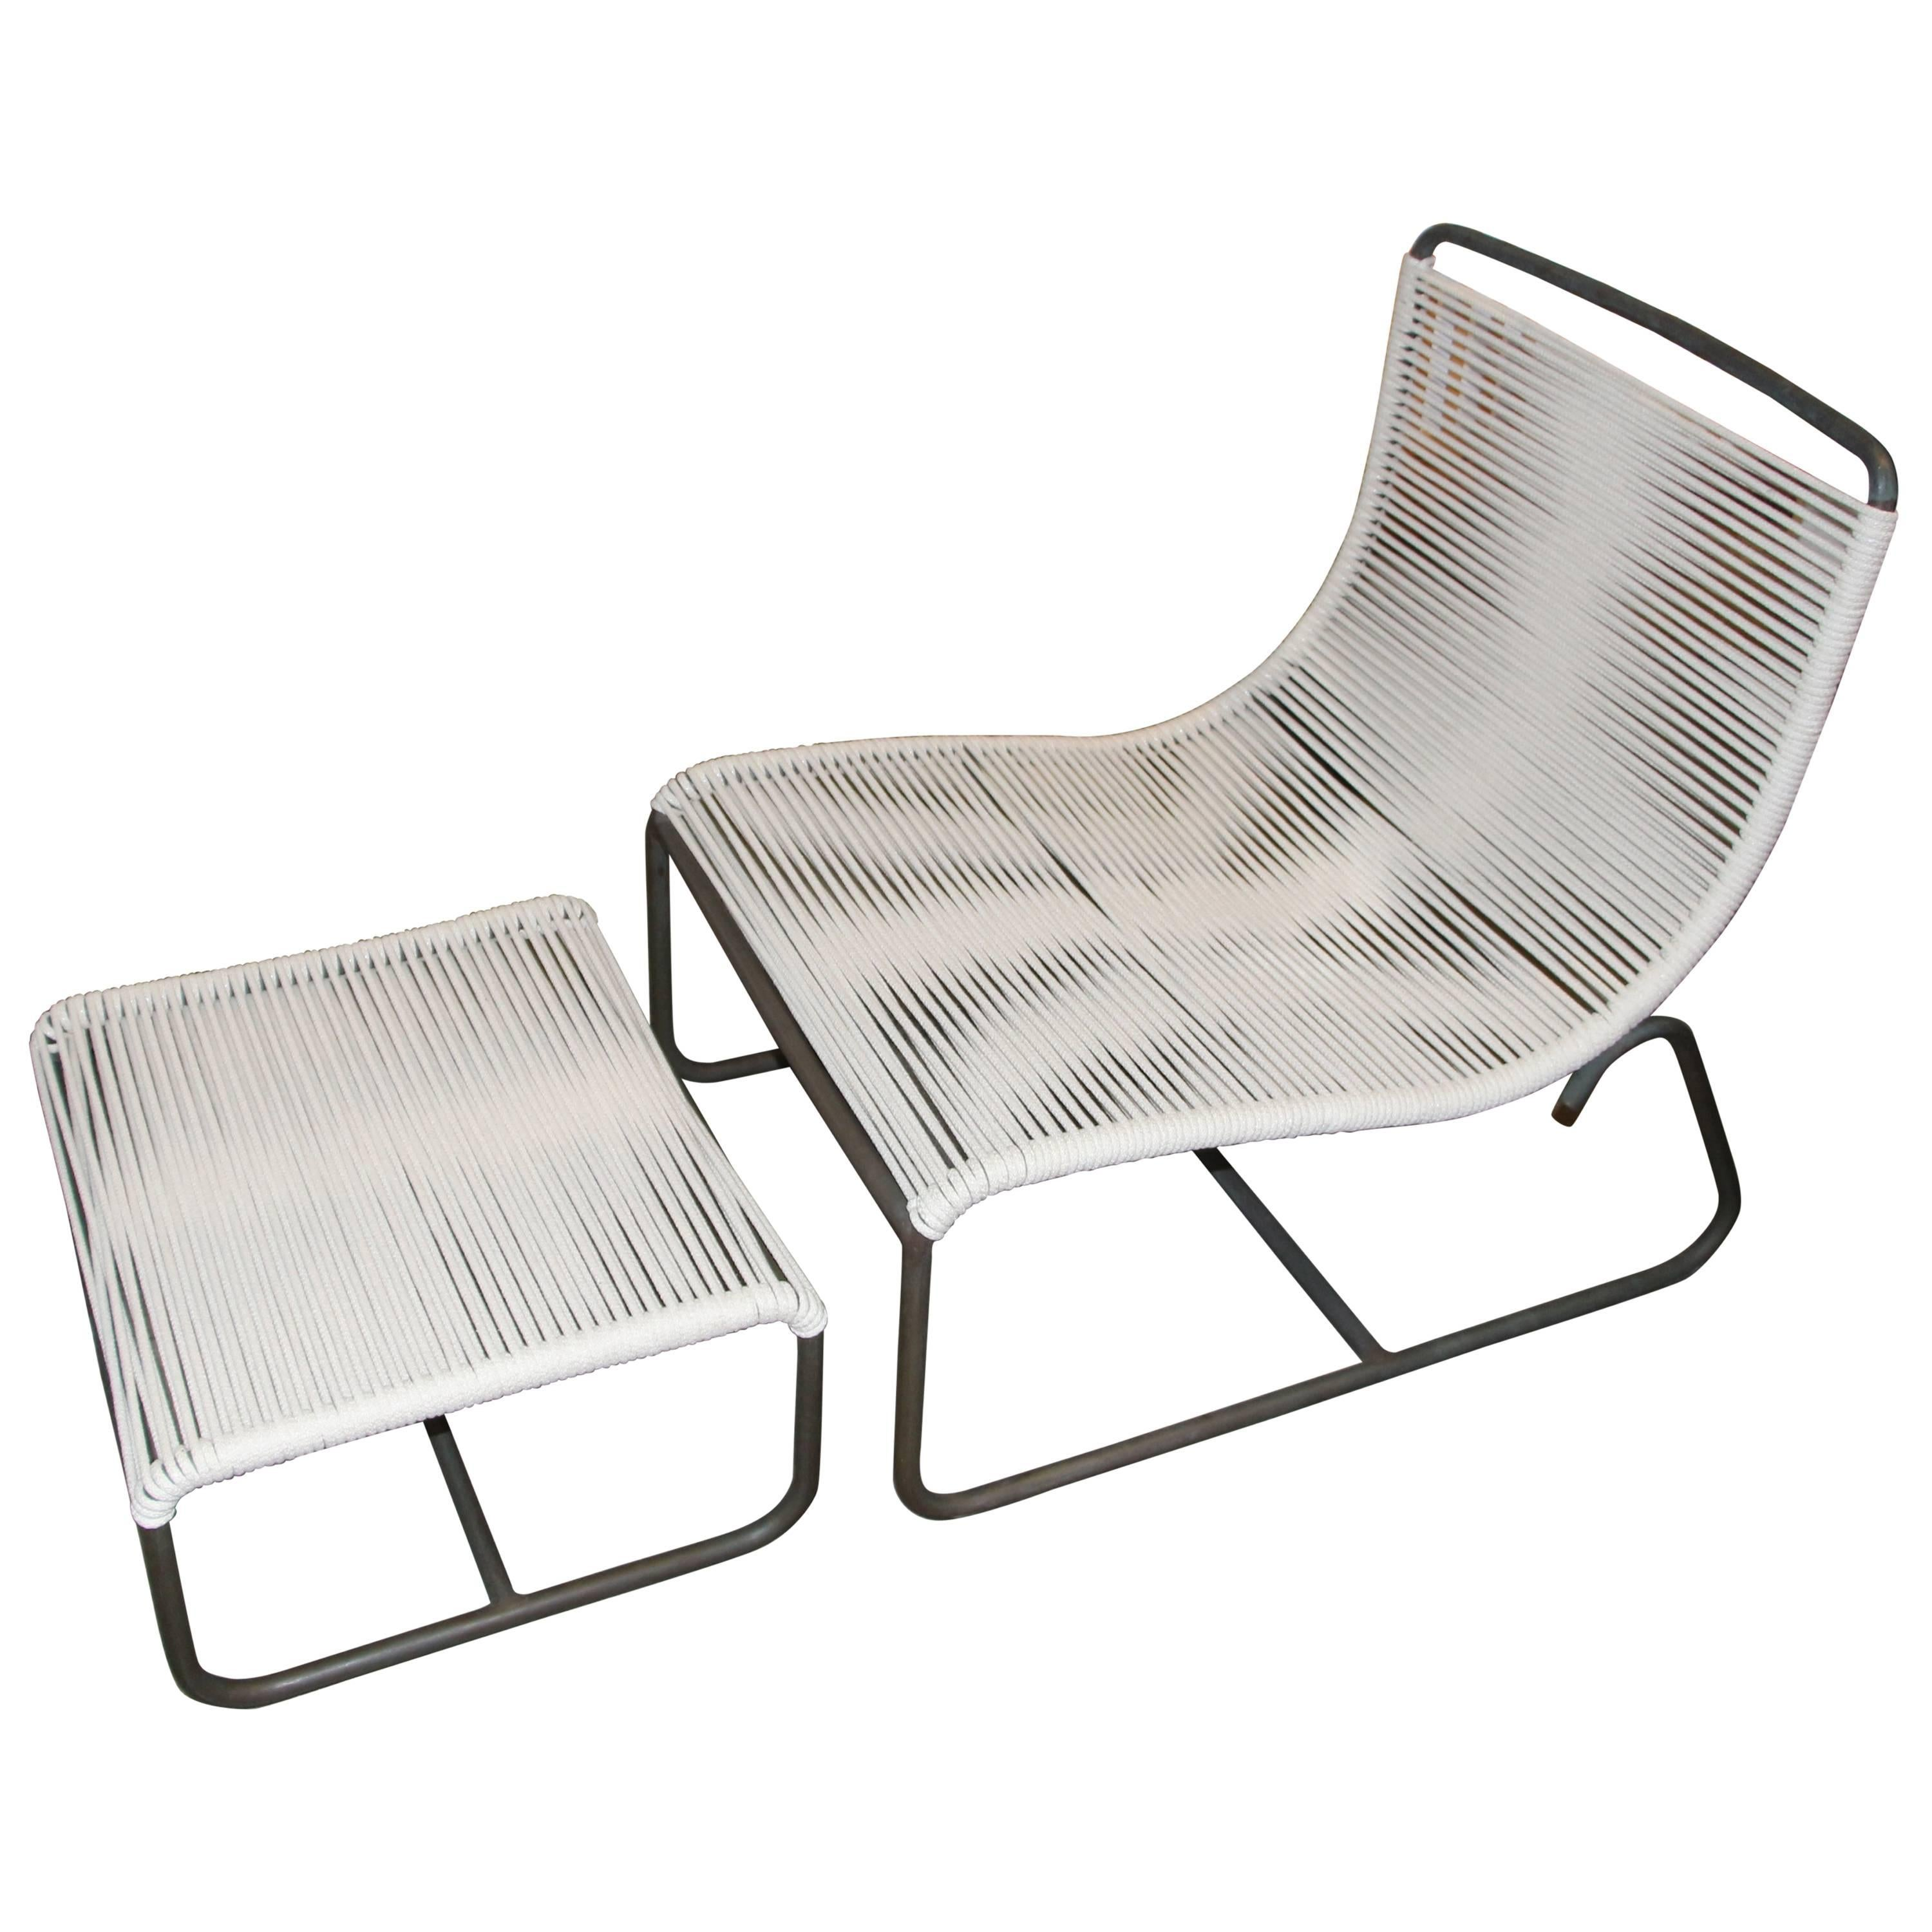 Captivating Walter Lamb For Brown Jordan Sleigh Lounge Chair And Ottoman For Sale